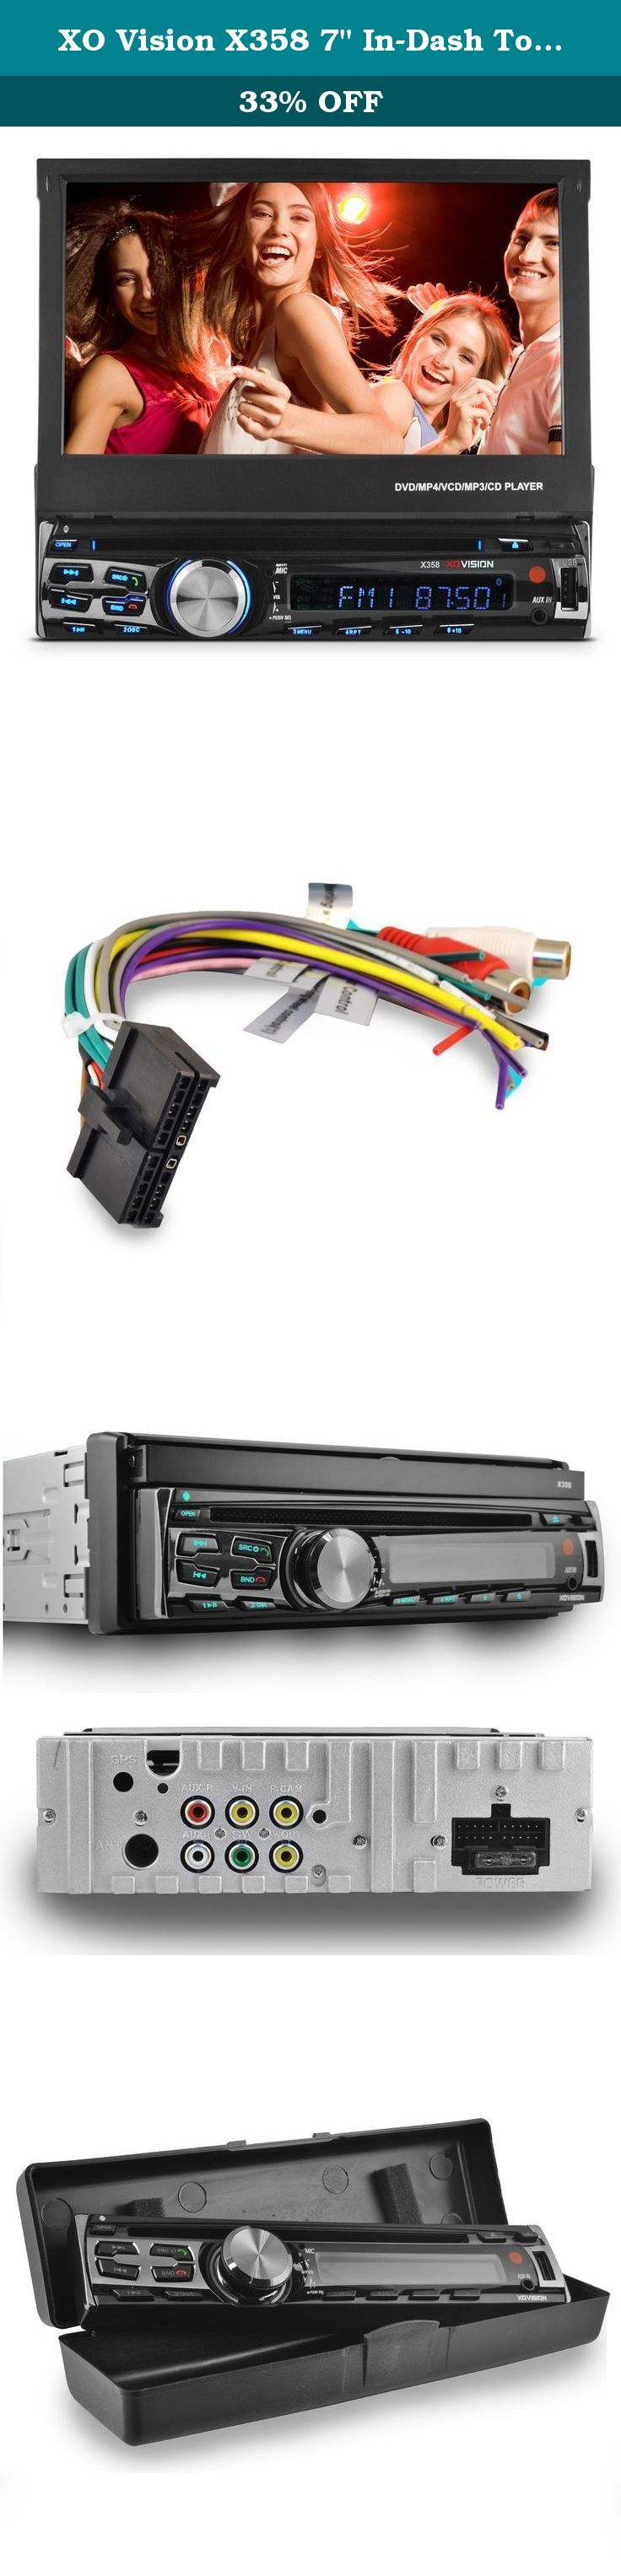 Pin On In Dash Dvd Video Receivers Car Video Car Electronics Car Vehicle Electronics Electronics